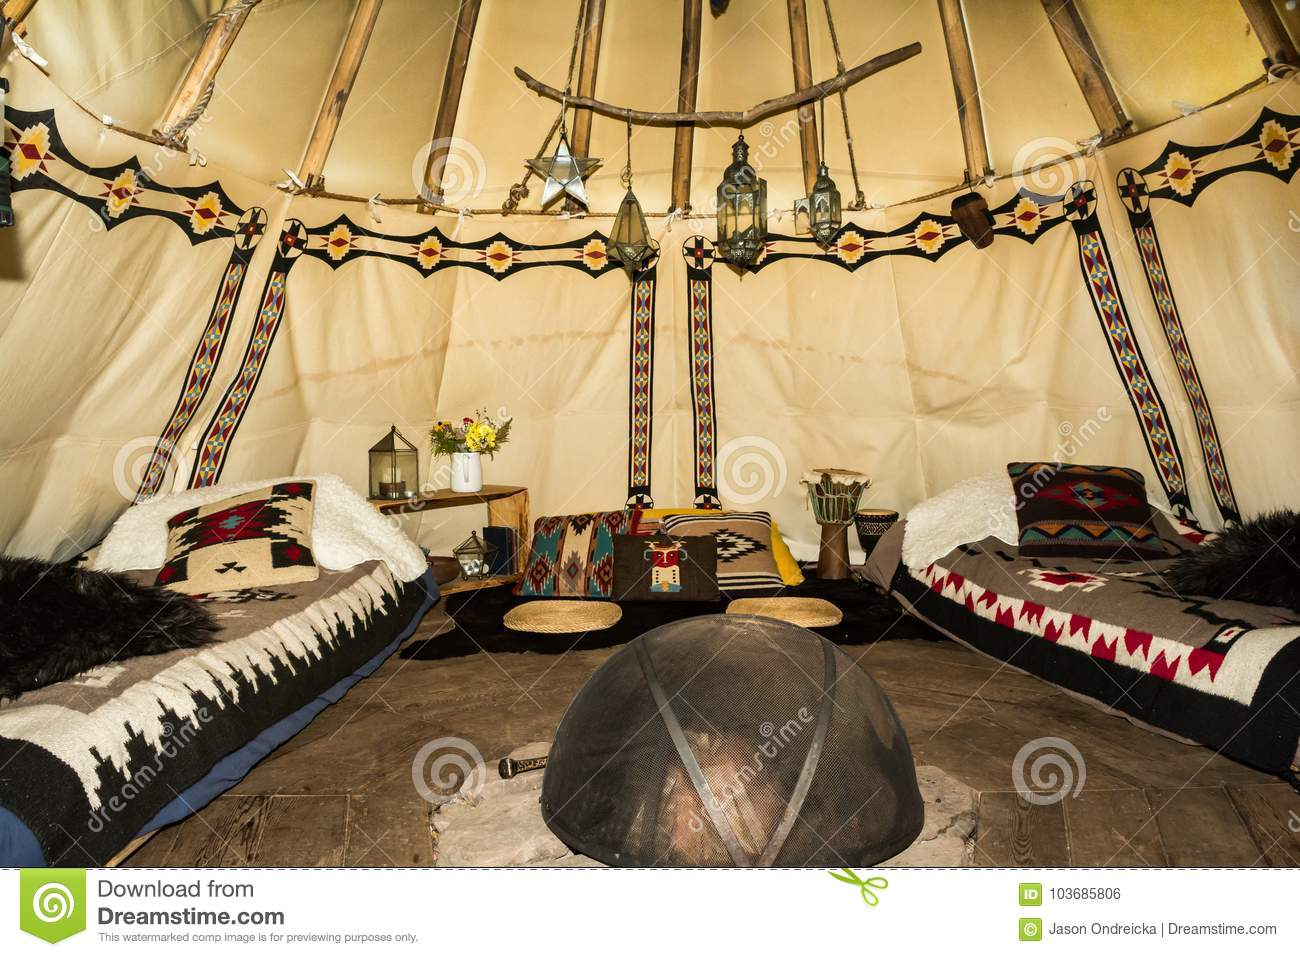 The inside of a Glamping Teepee